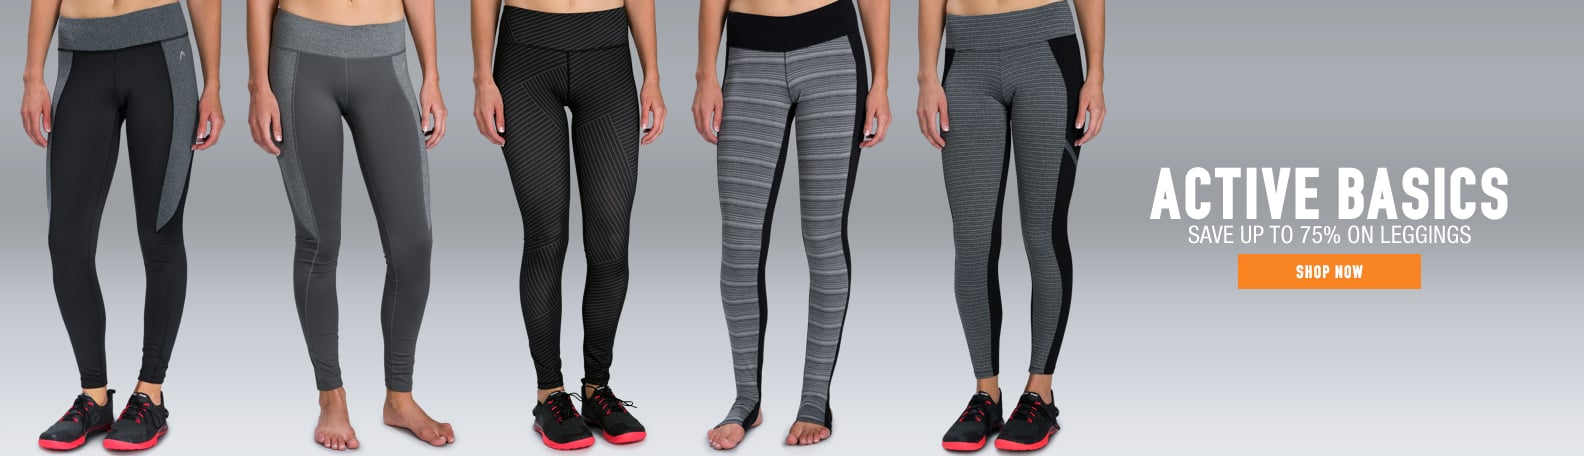 Leggings - save up to 75%